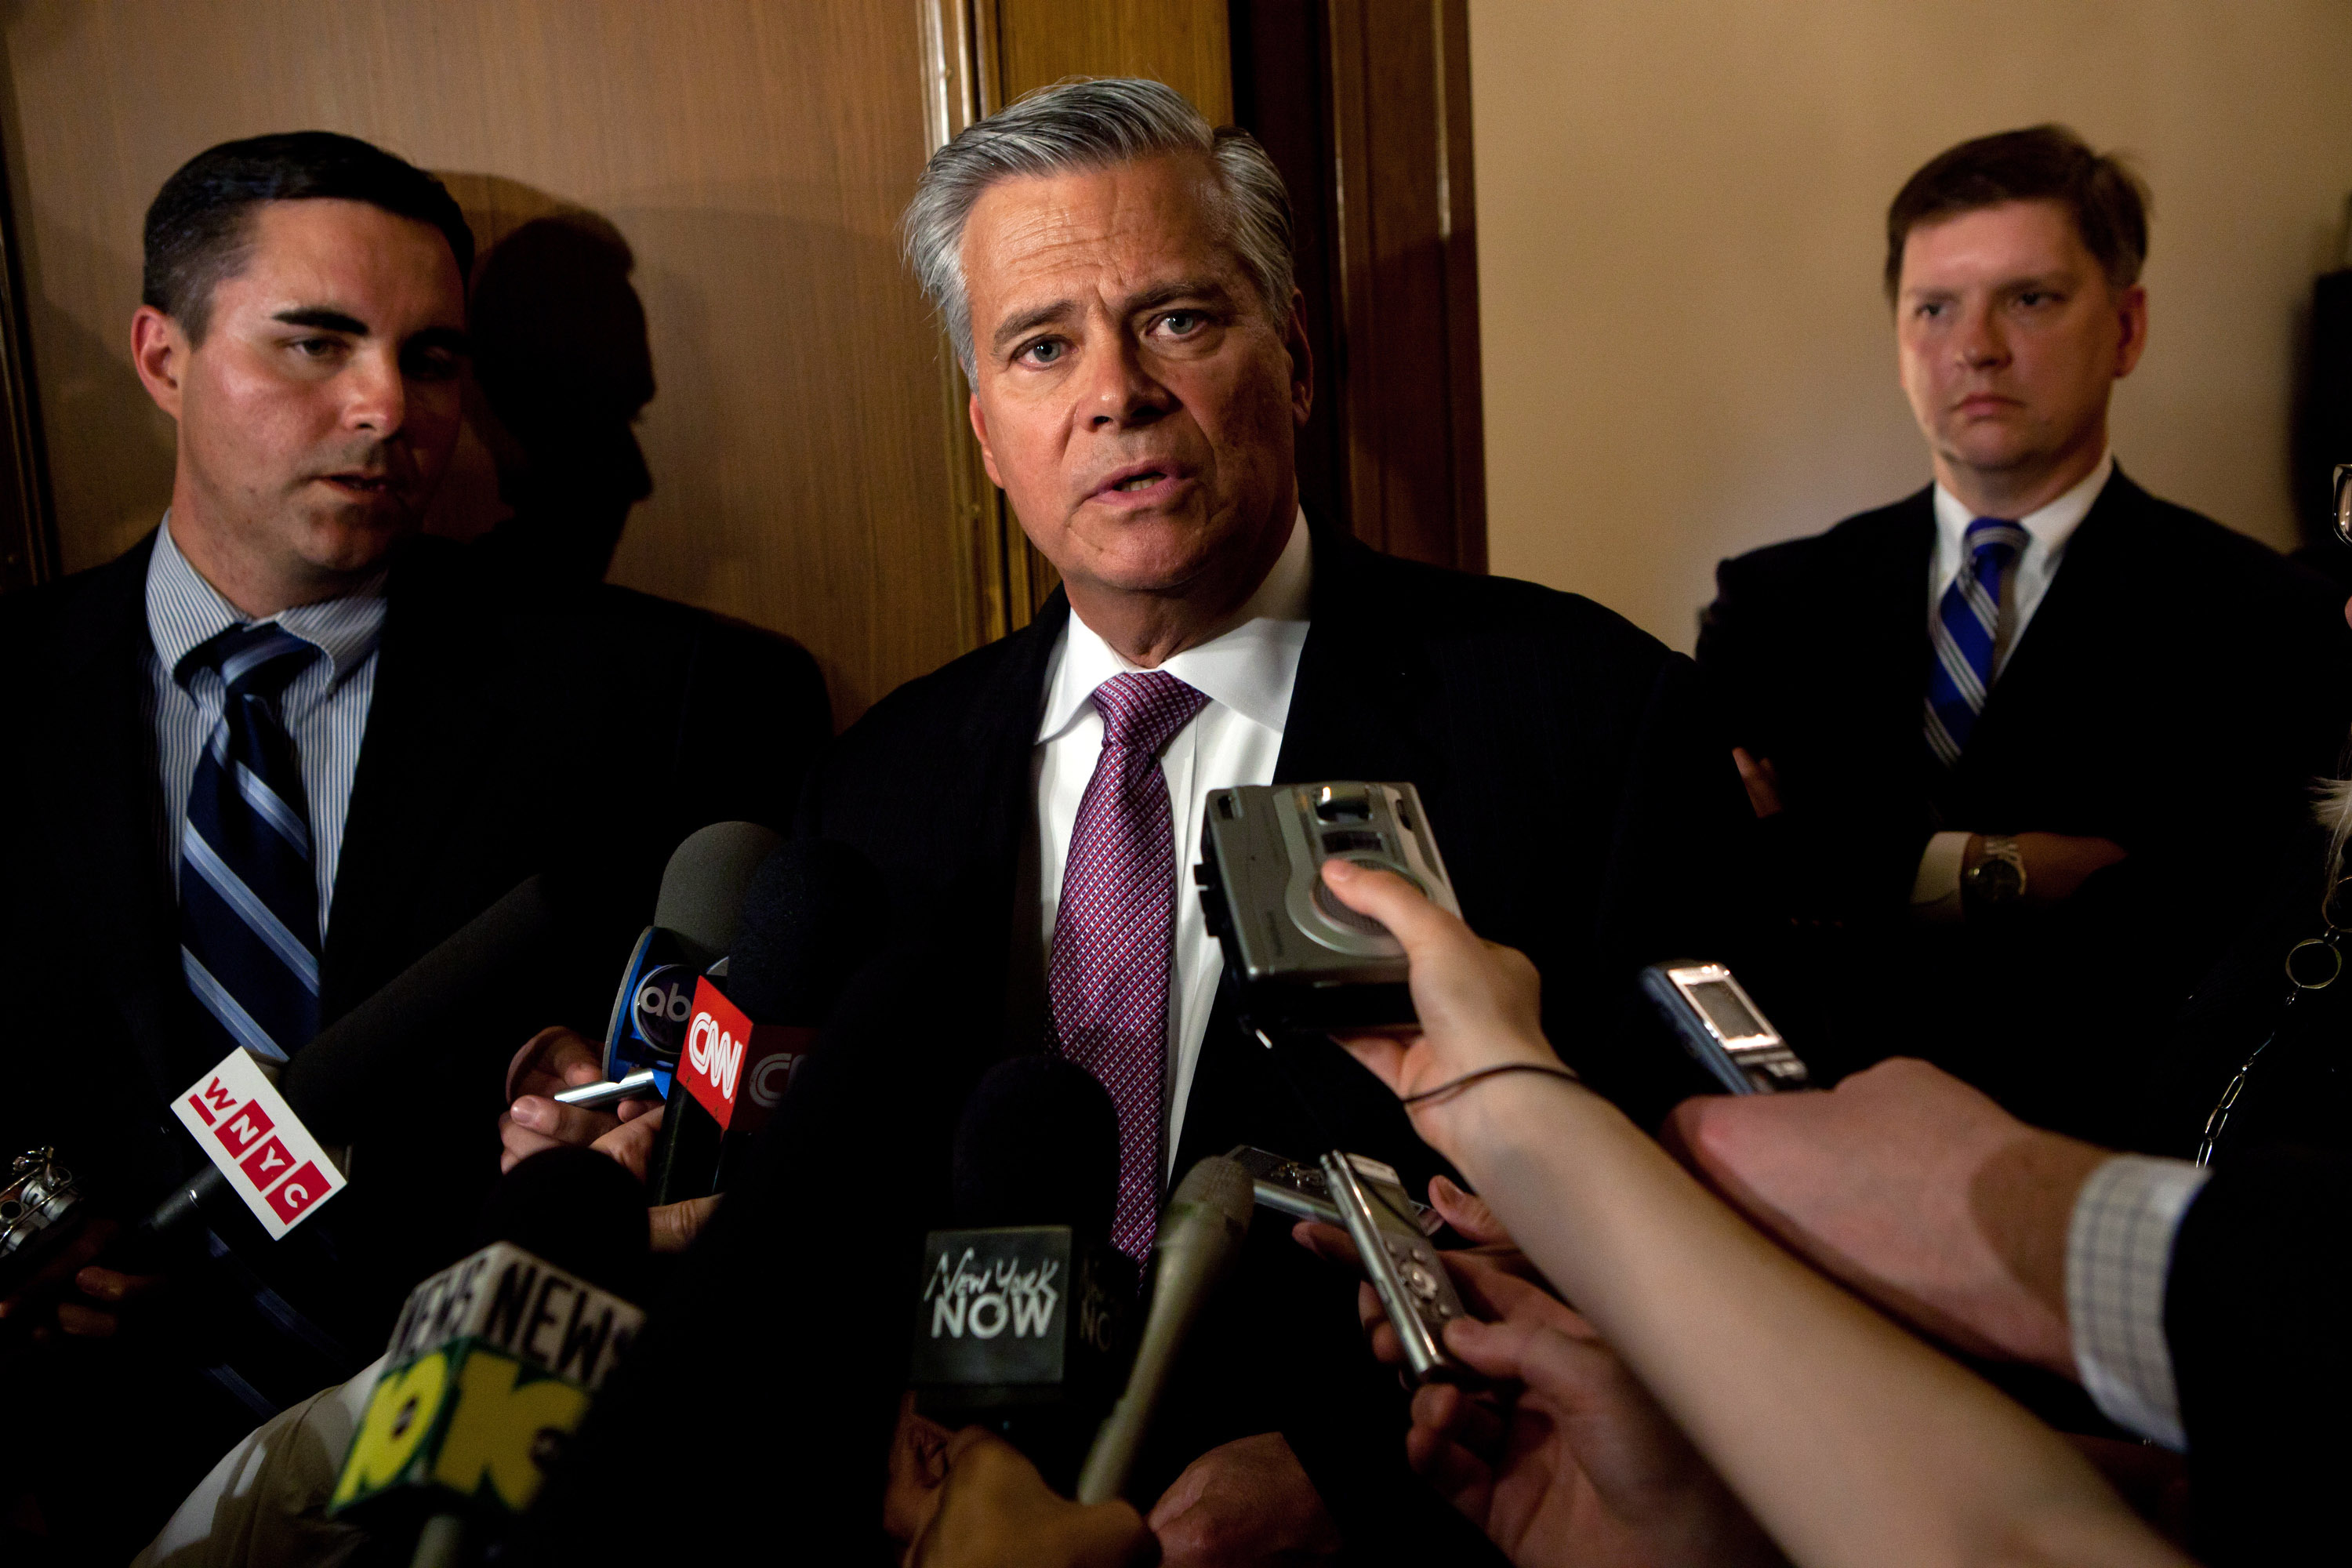 State Senator Dean Skelos, the Republican majority leader. (Photo:  Matthew Cavanaugh/Getty Images)